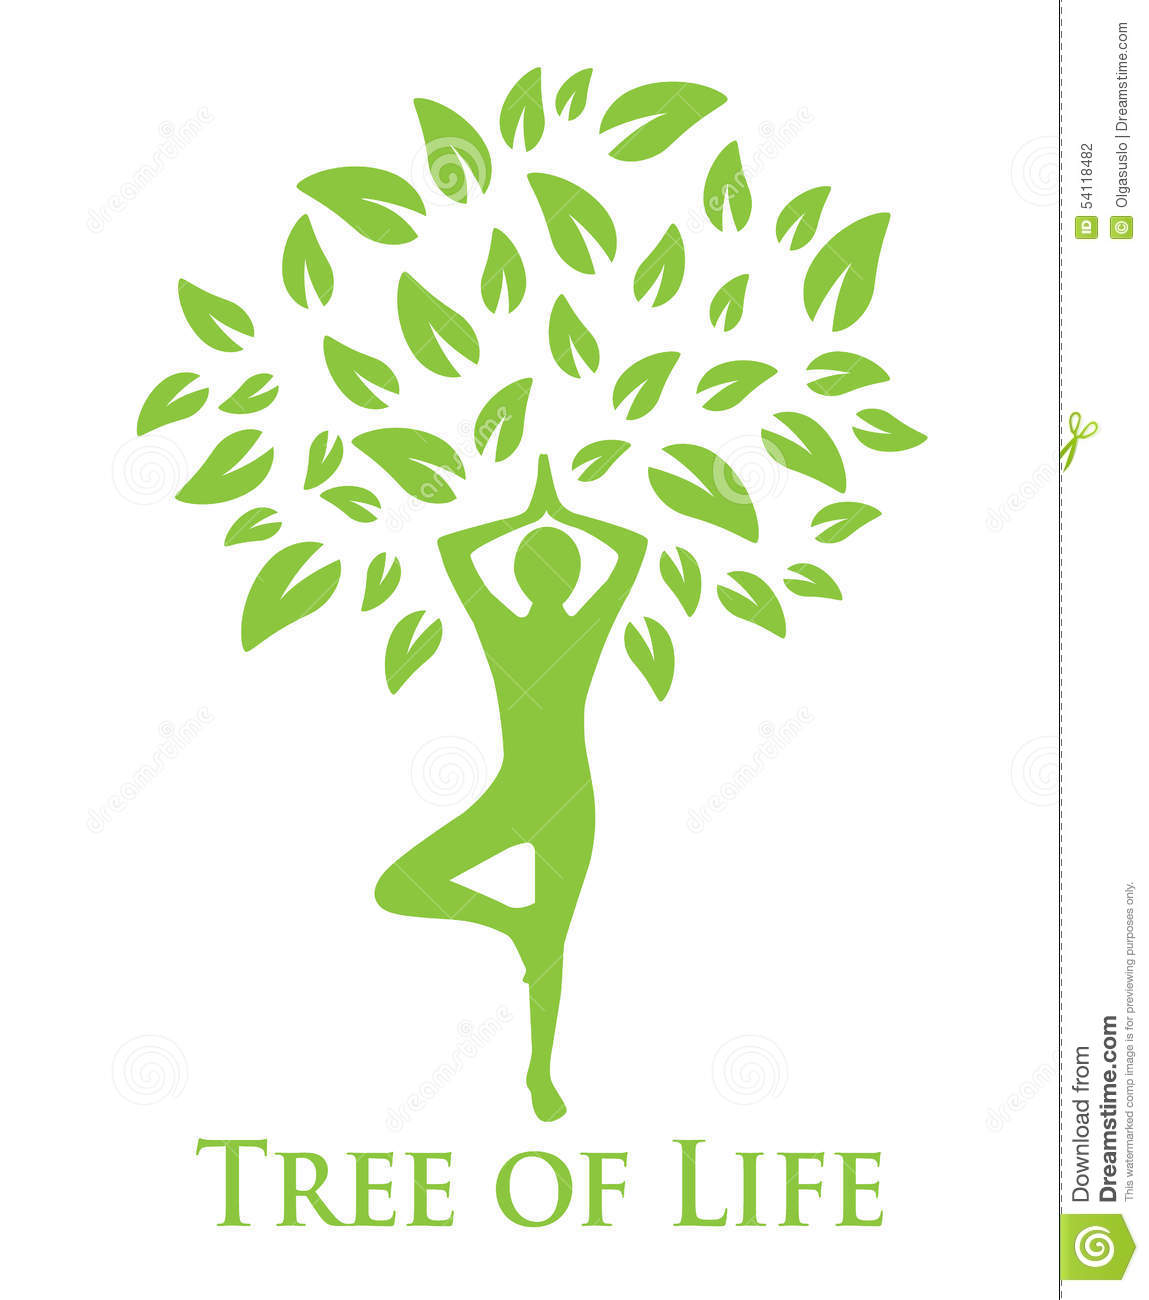 Tree with green leaves and a silhouette of a man doing yoga.